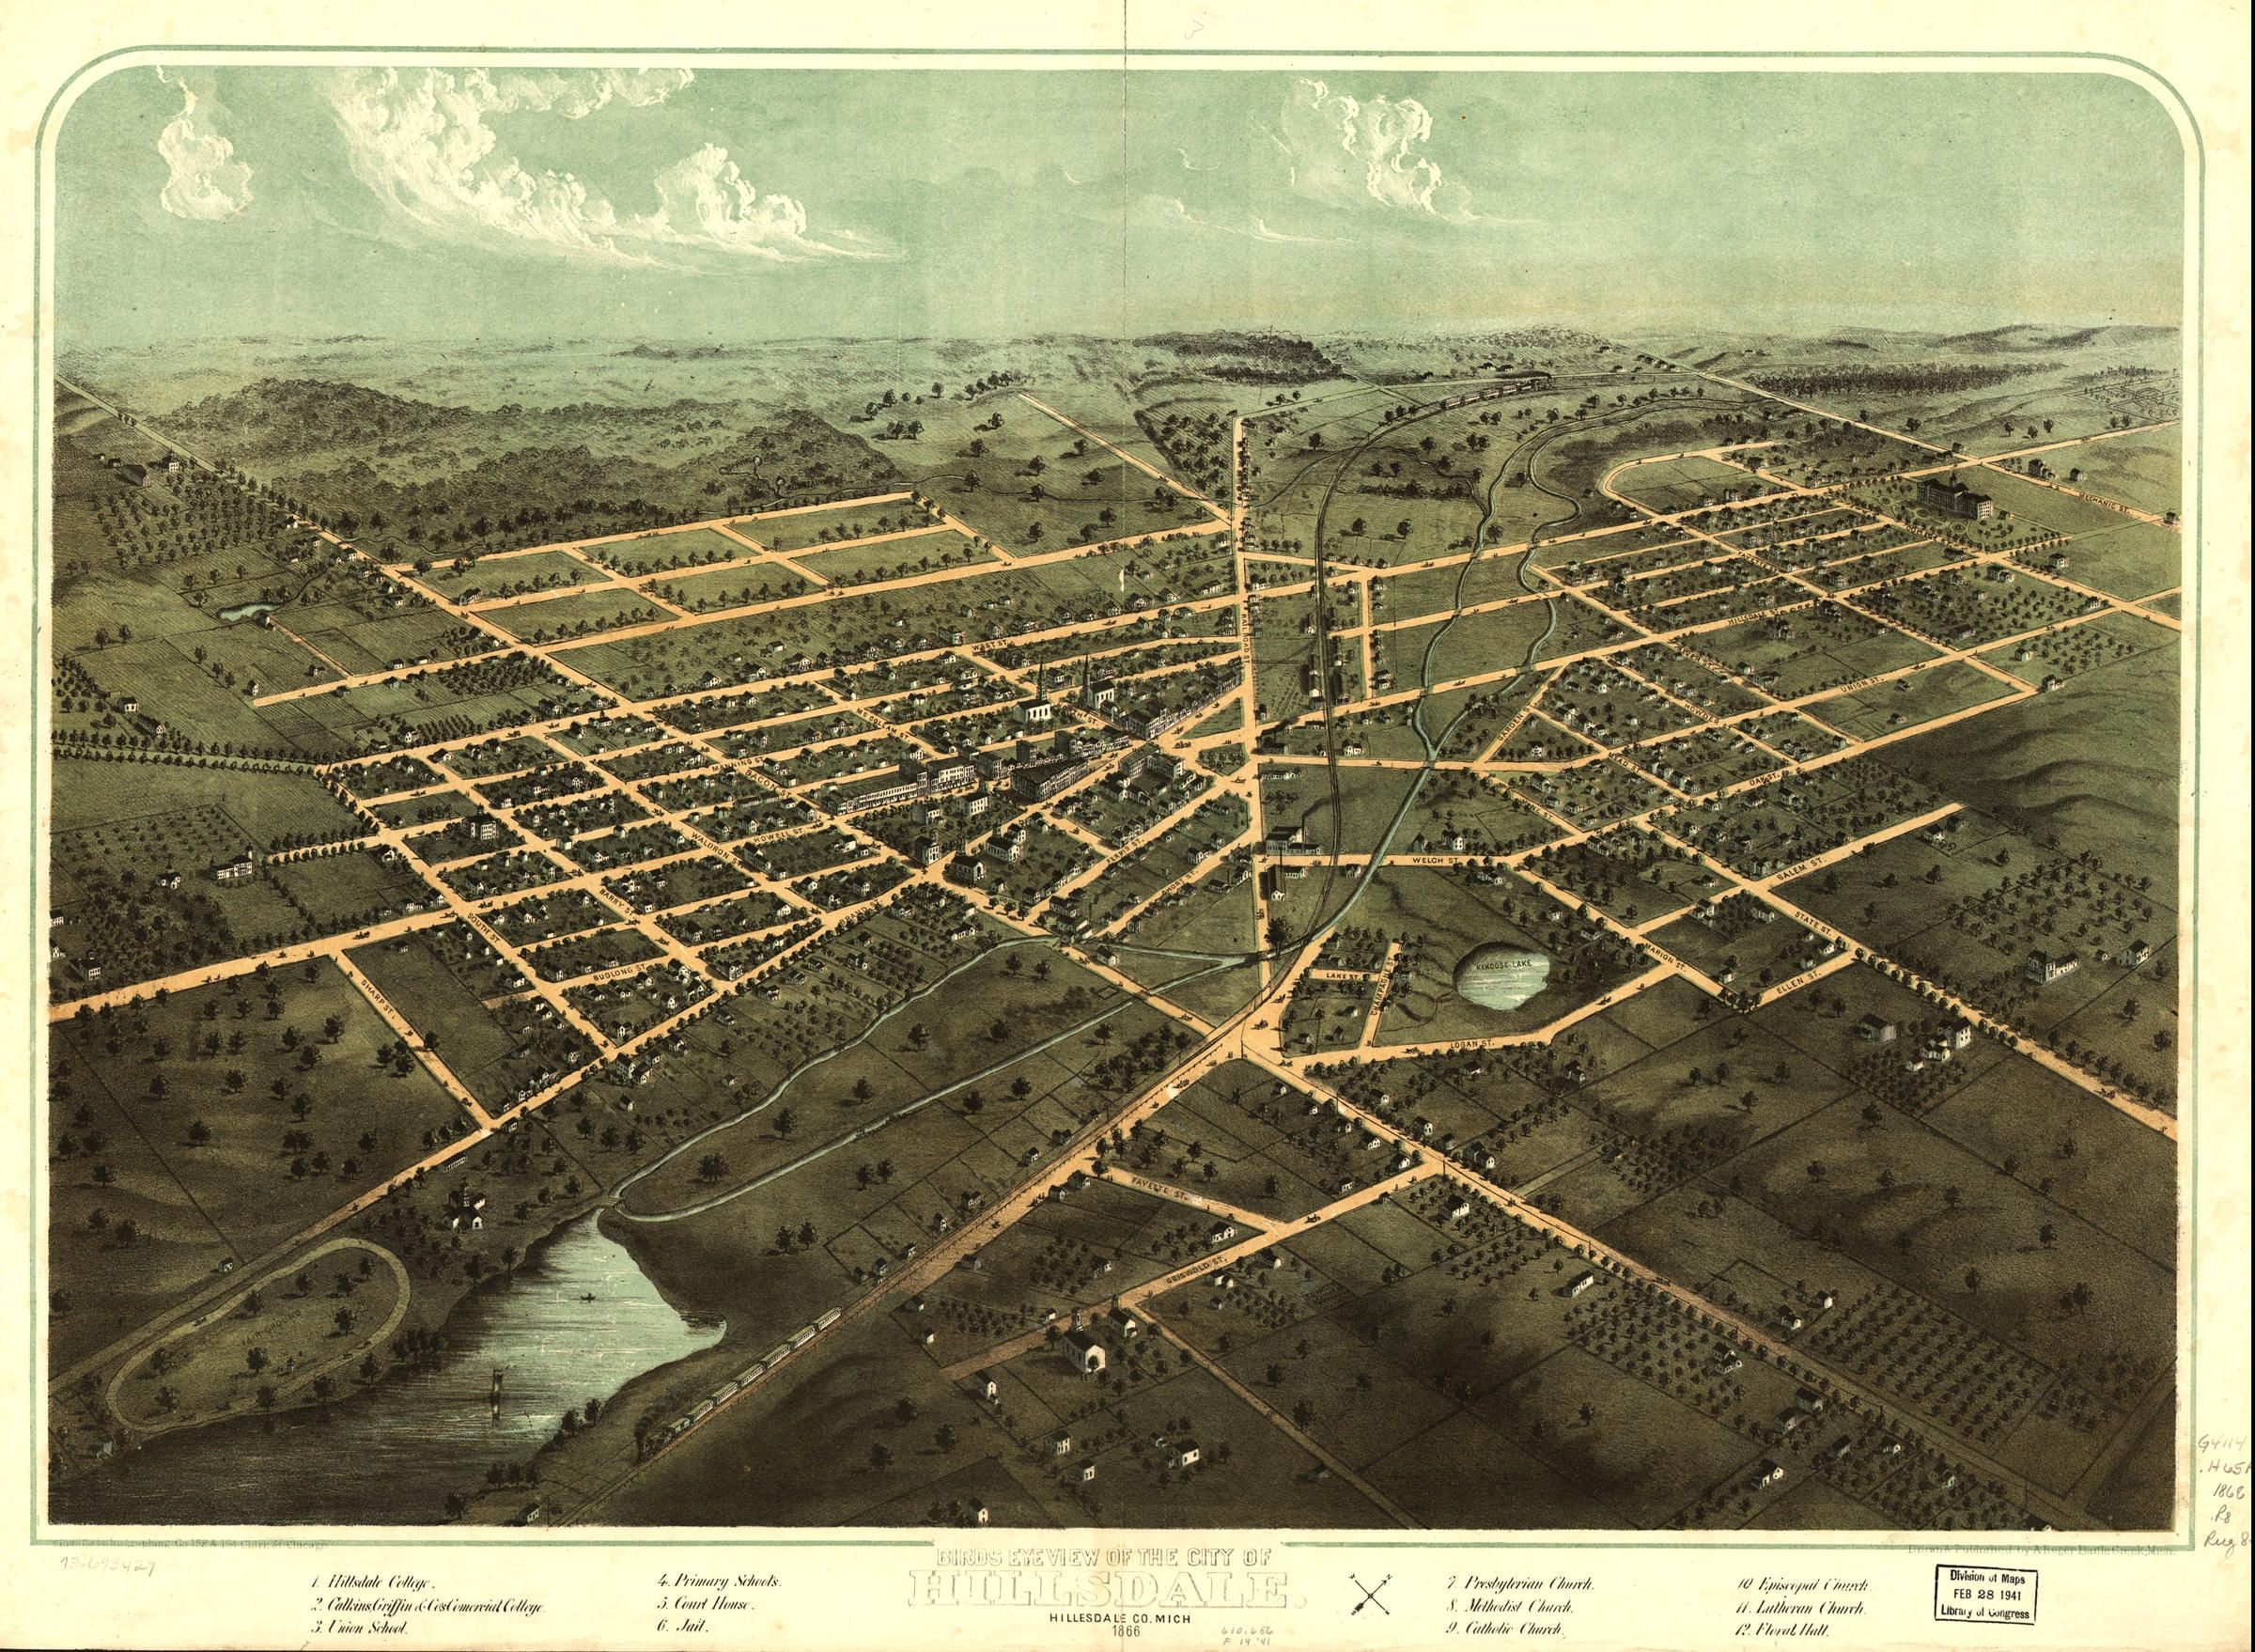 24x36 Vintage Reproduction Map of Weston West Virginia Lewis County 1900